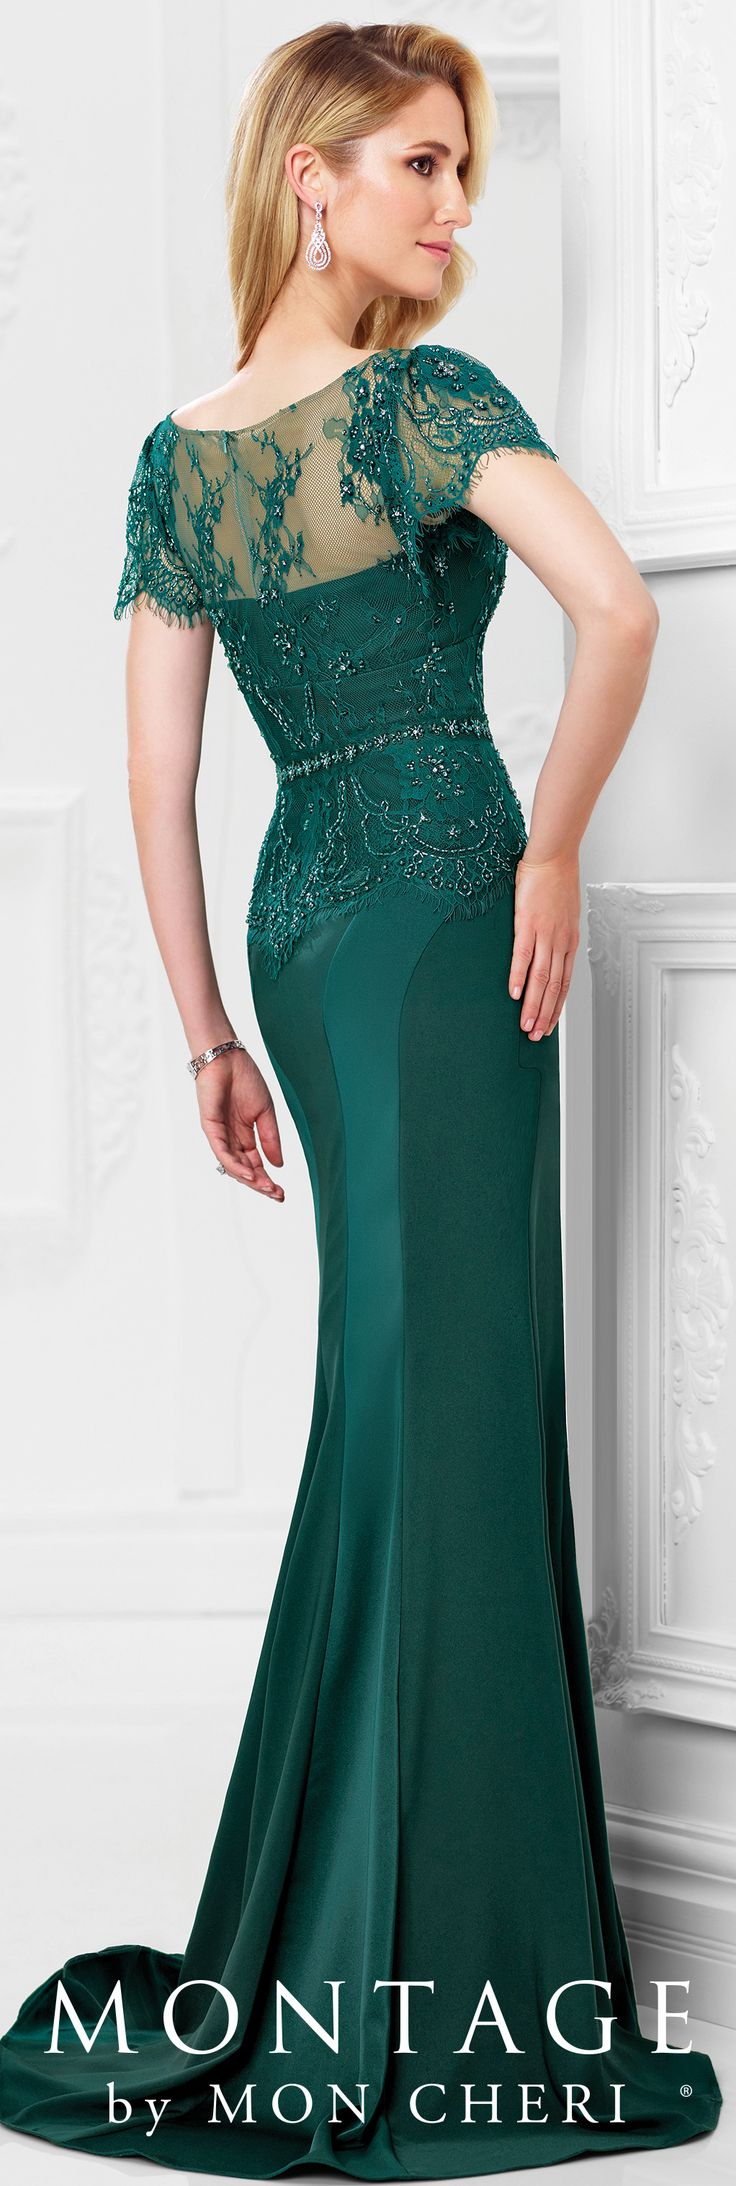 Best 25+ Green evening gowns ideas only on Pinterest | Evening ...